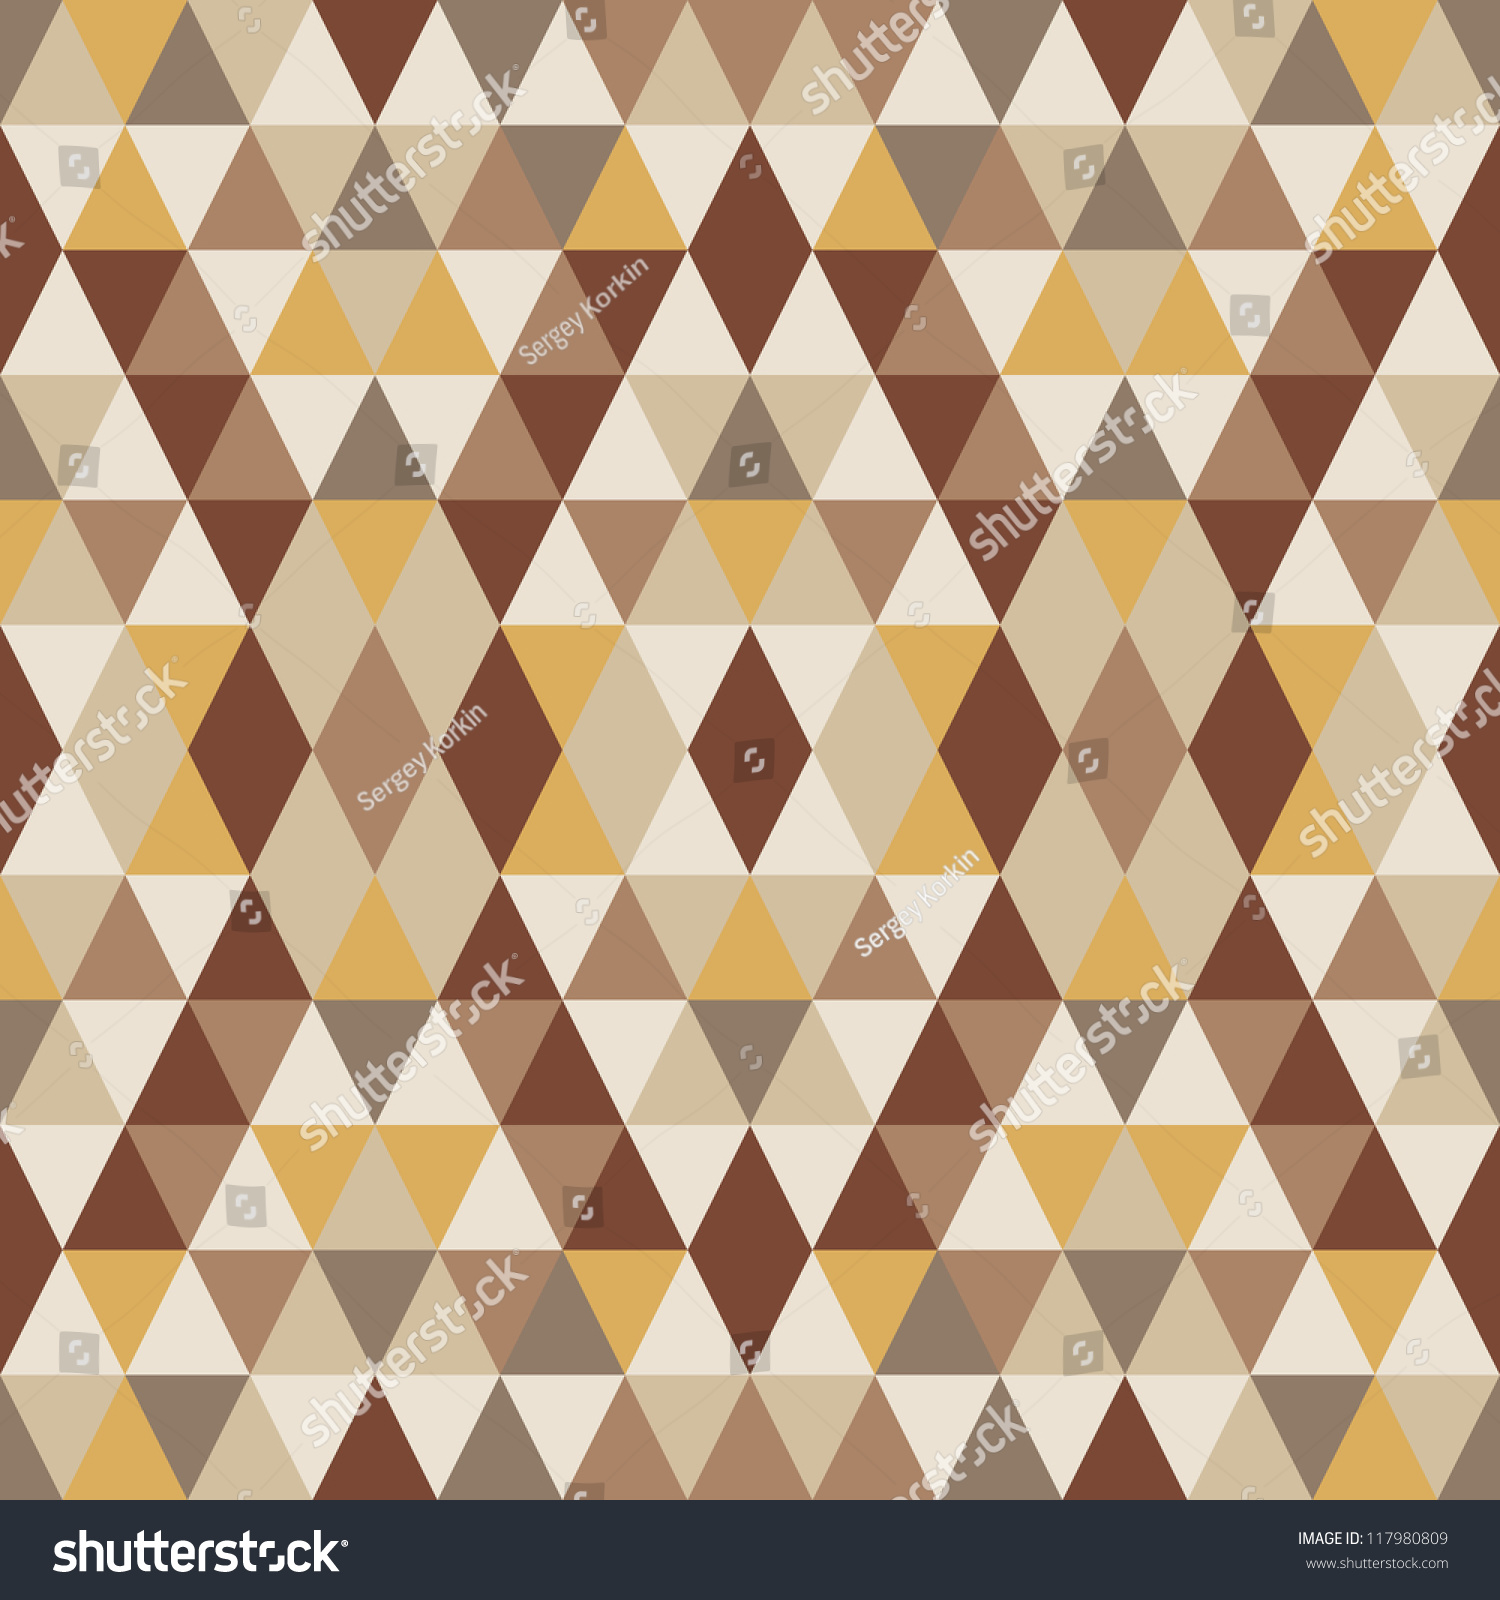 stock vector geometric background - photo #20